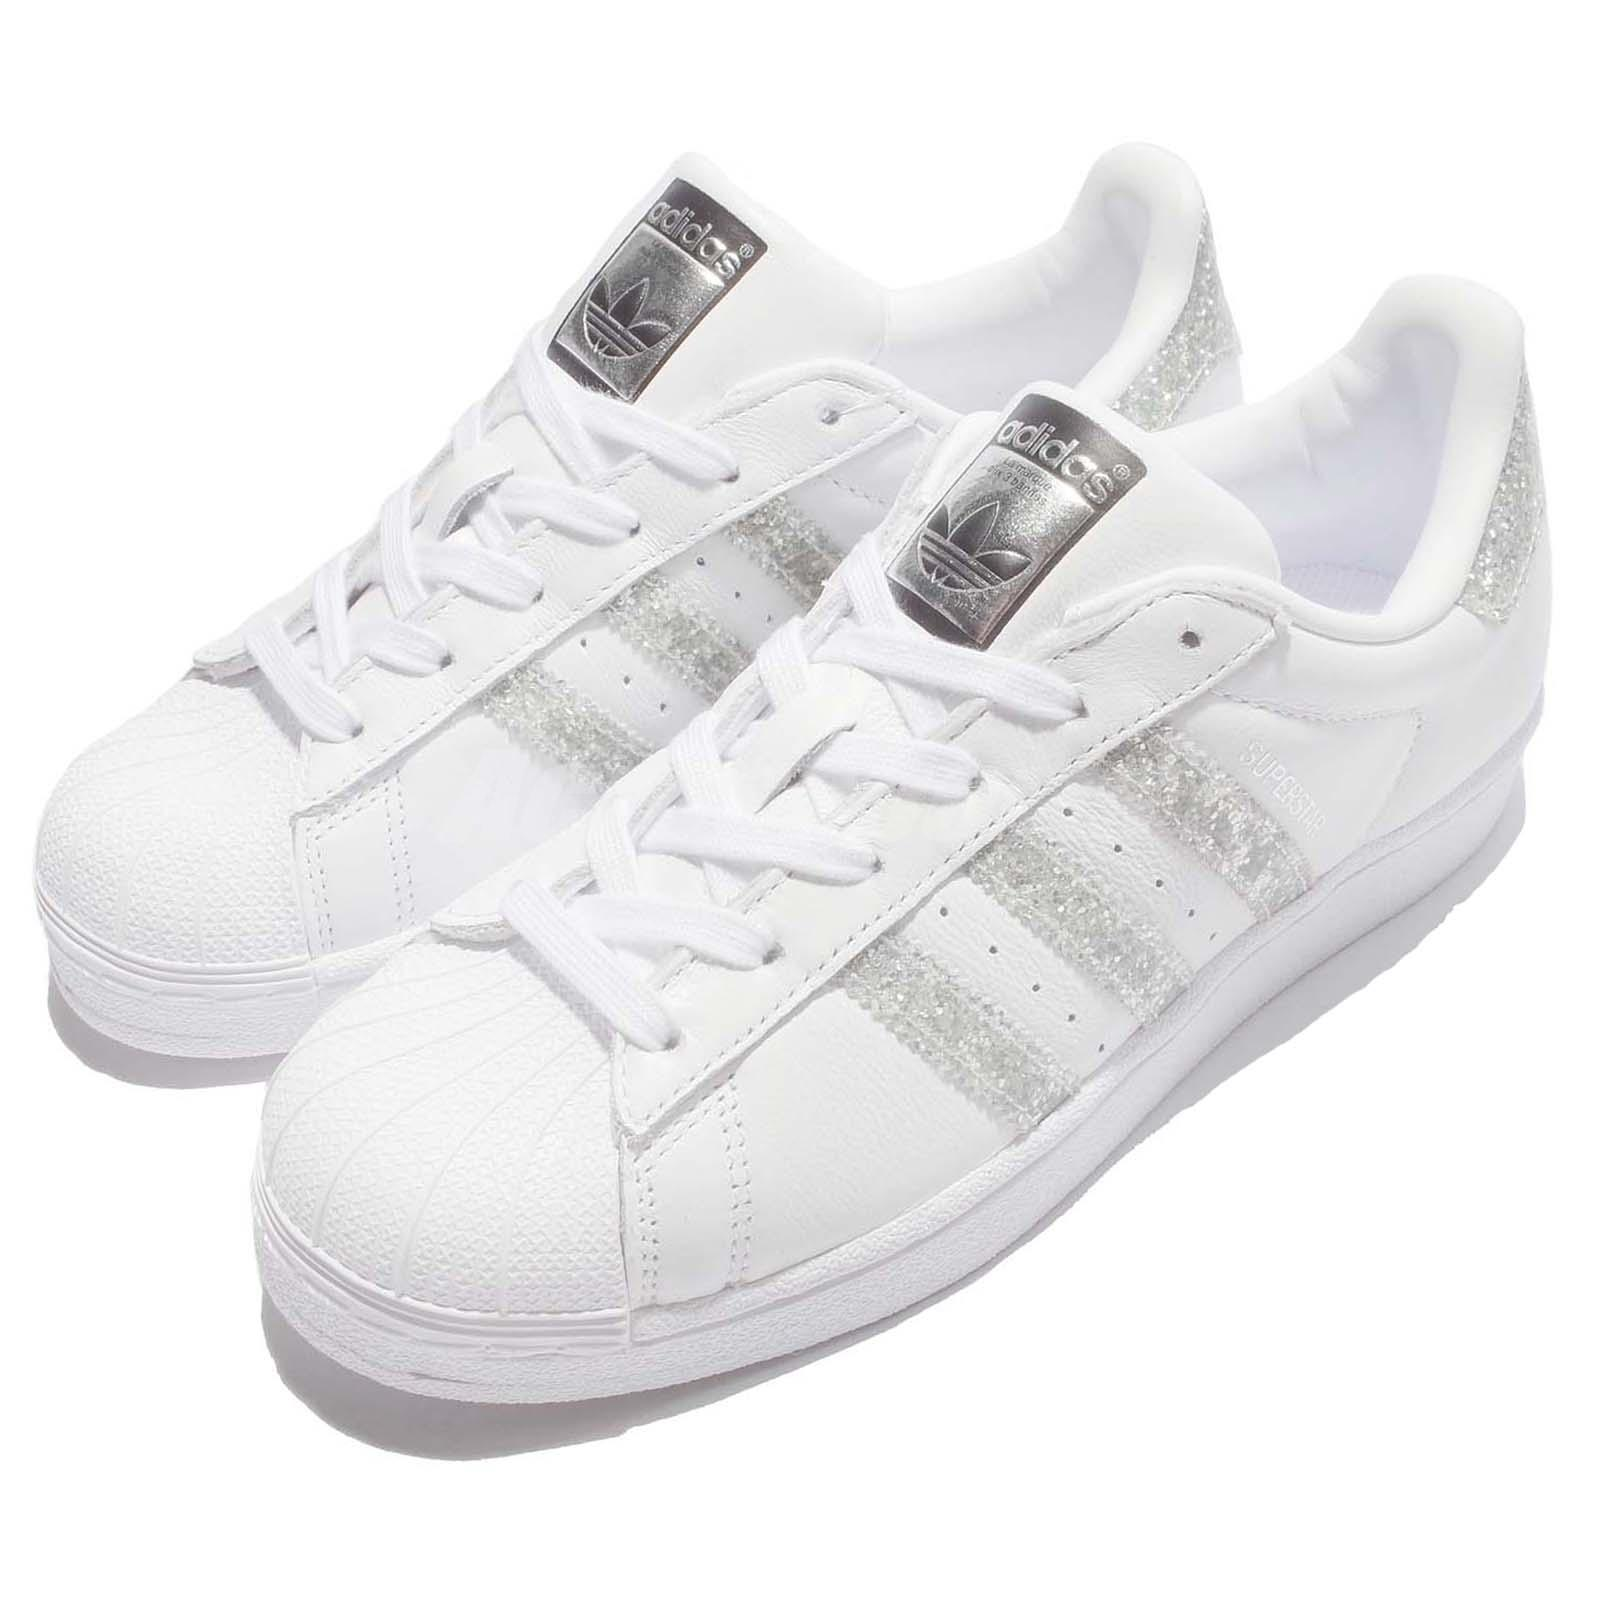 What Are Adidas Size Medium Shoes